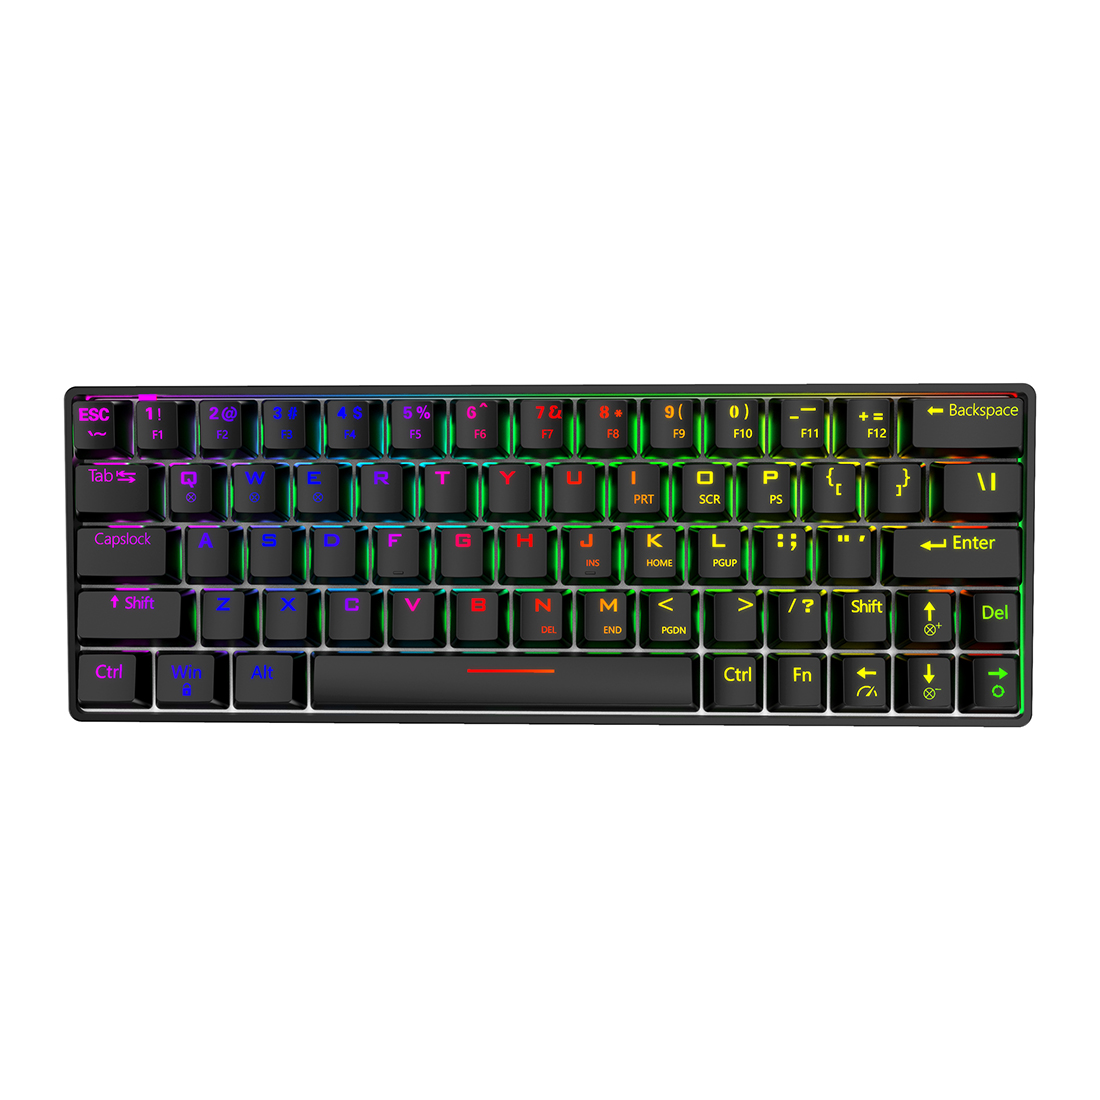 Shark64 Gaming Mechanical Keyboard 64 Keys Bluetooth Wired Dual-mode RGB Backlight - Black